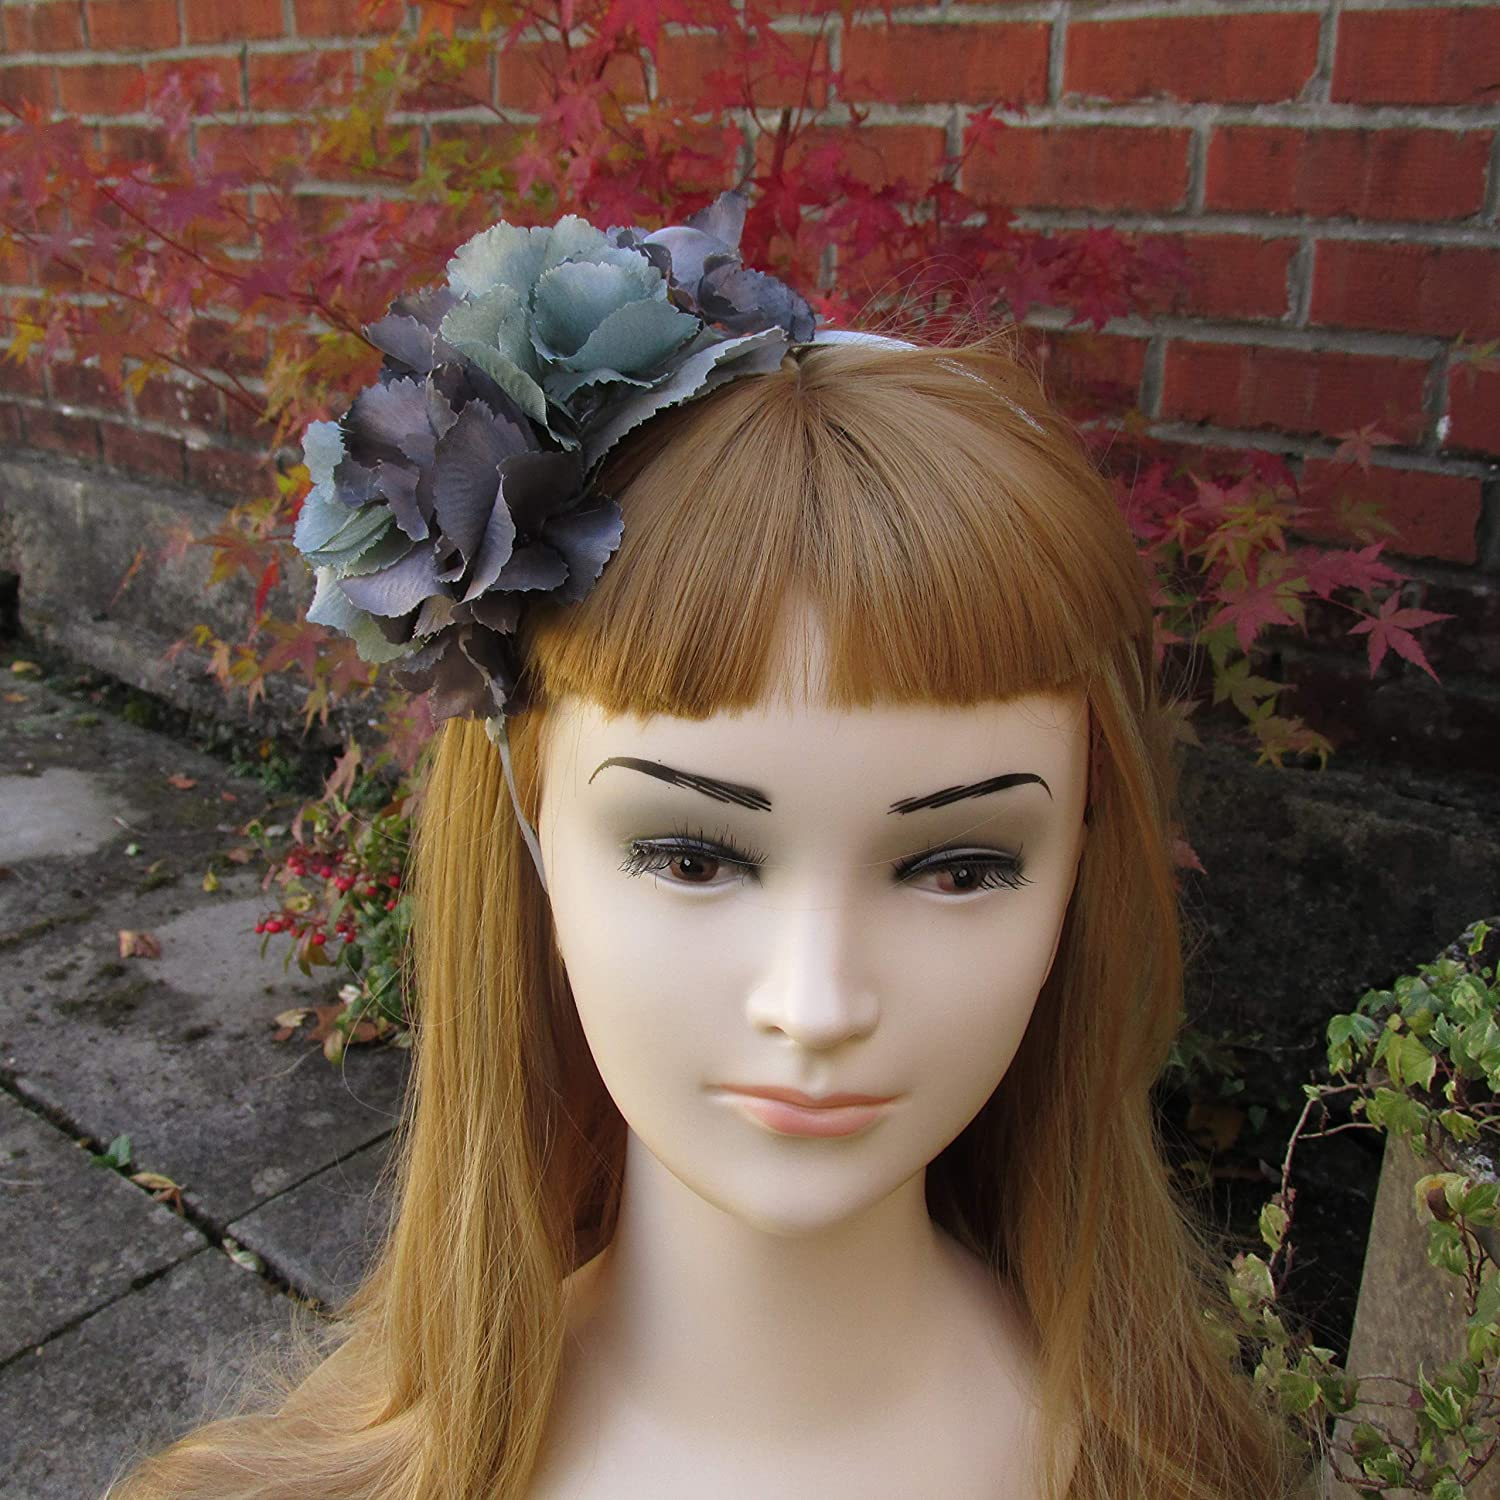 Grey And Soft Green Hydrangea Fascinator On A Headband Mother Of Bride Wedding Guest Hair Accessories Amazoncouk Handmade: Headband For Wedding Guest At Websimilar.org